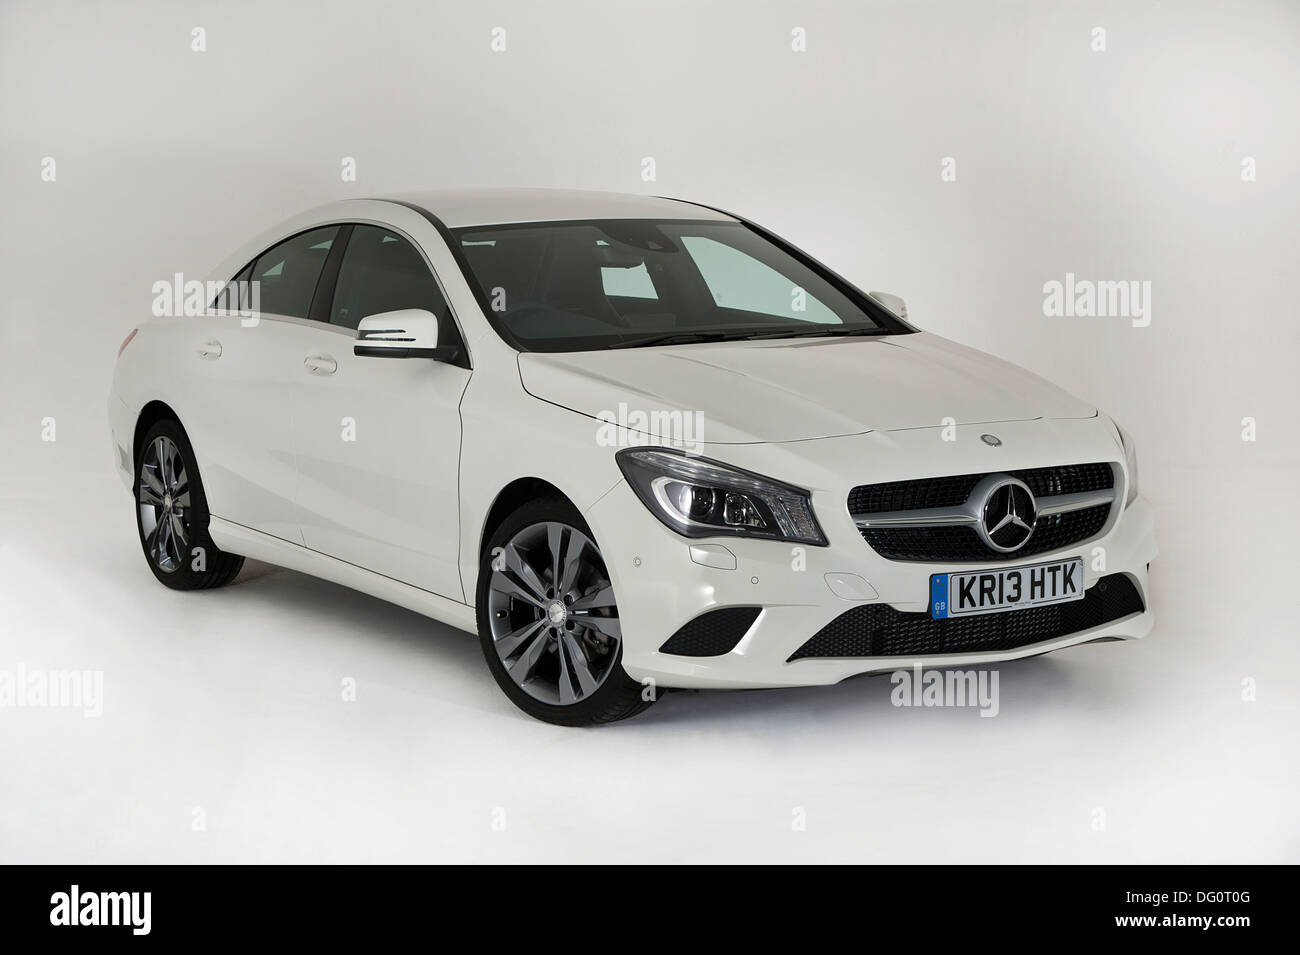 All Types 2013 mercedes cla : 2013 Mercedes Benz CLA 180 Sport Stock Photo: 61484432 - Alamy